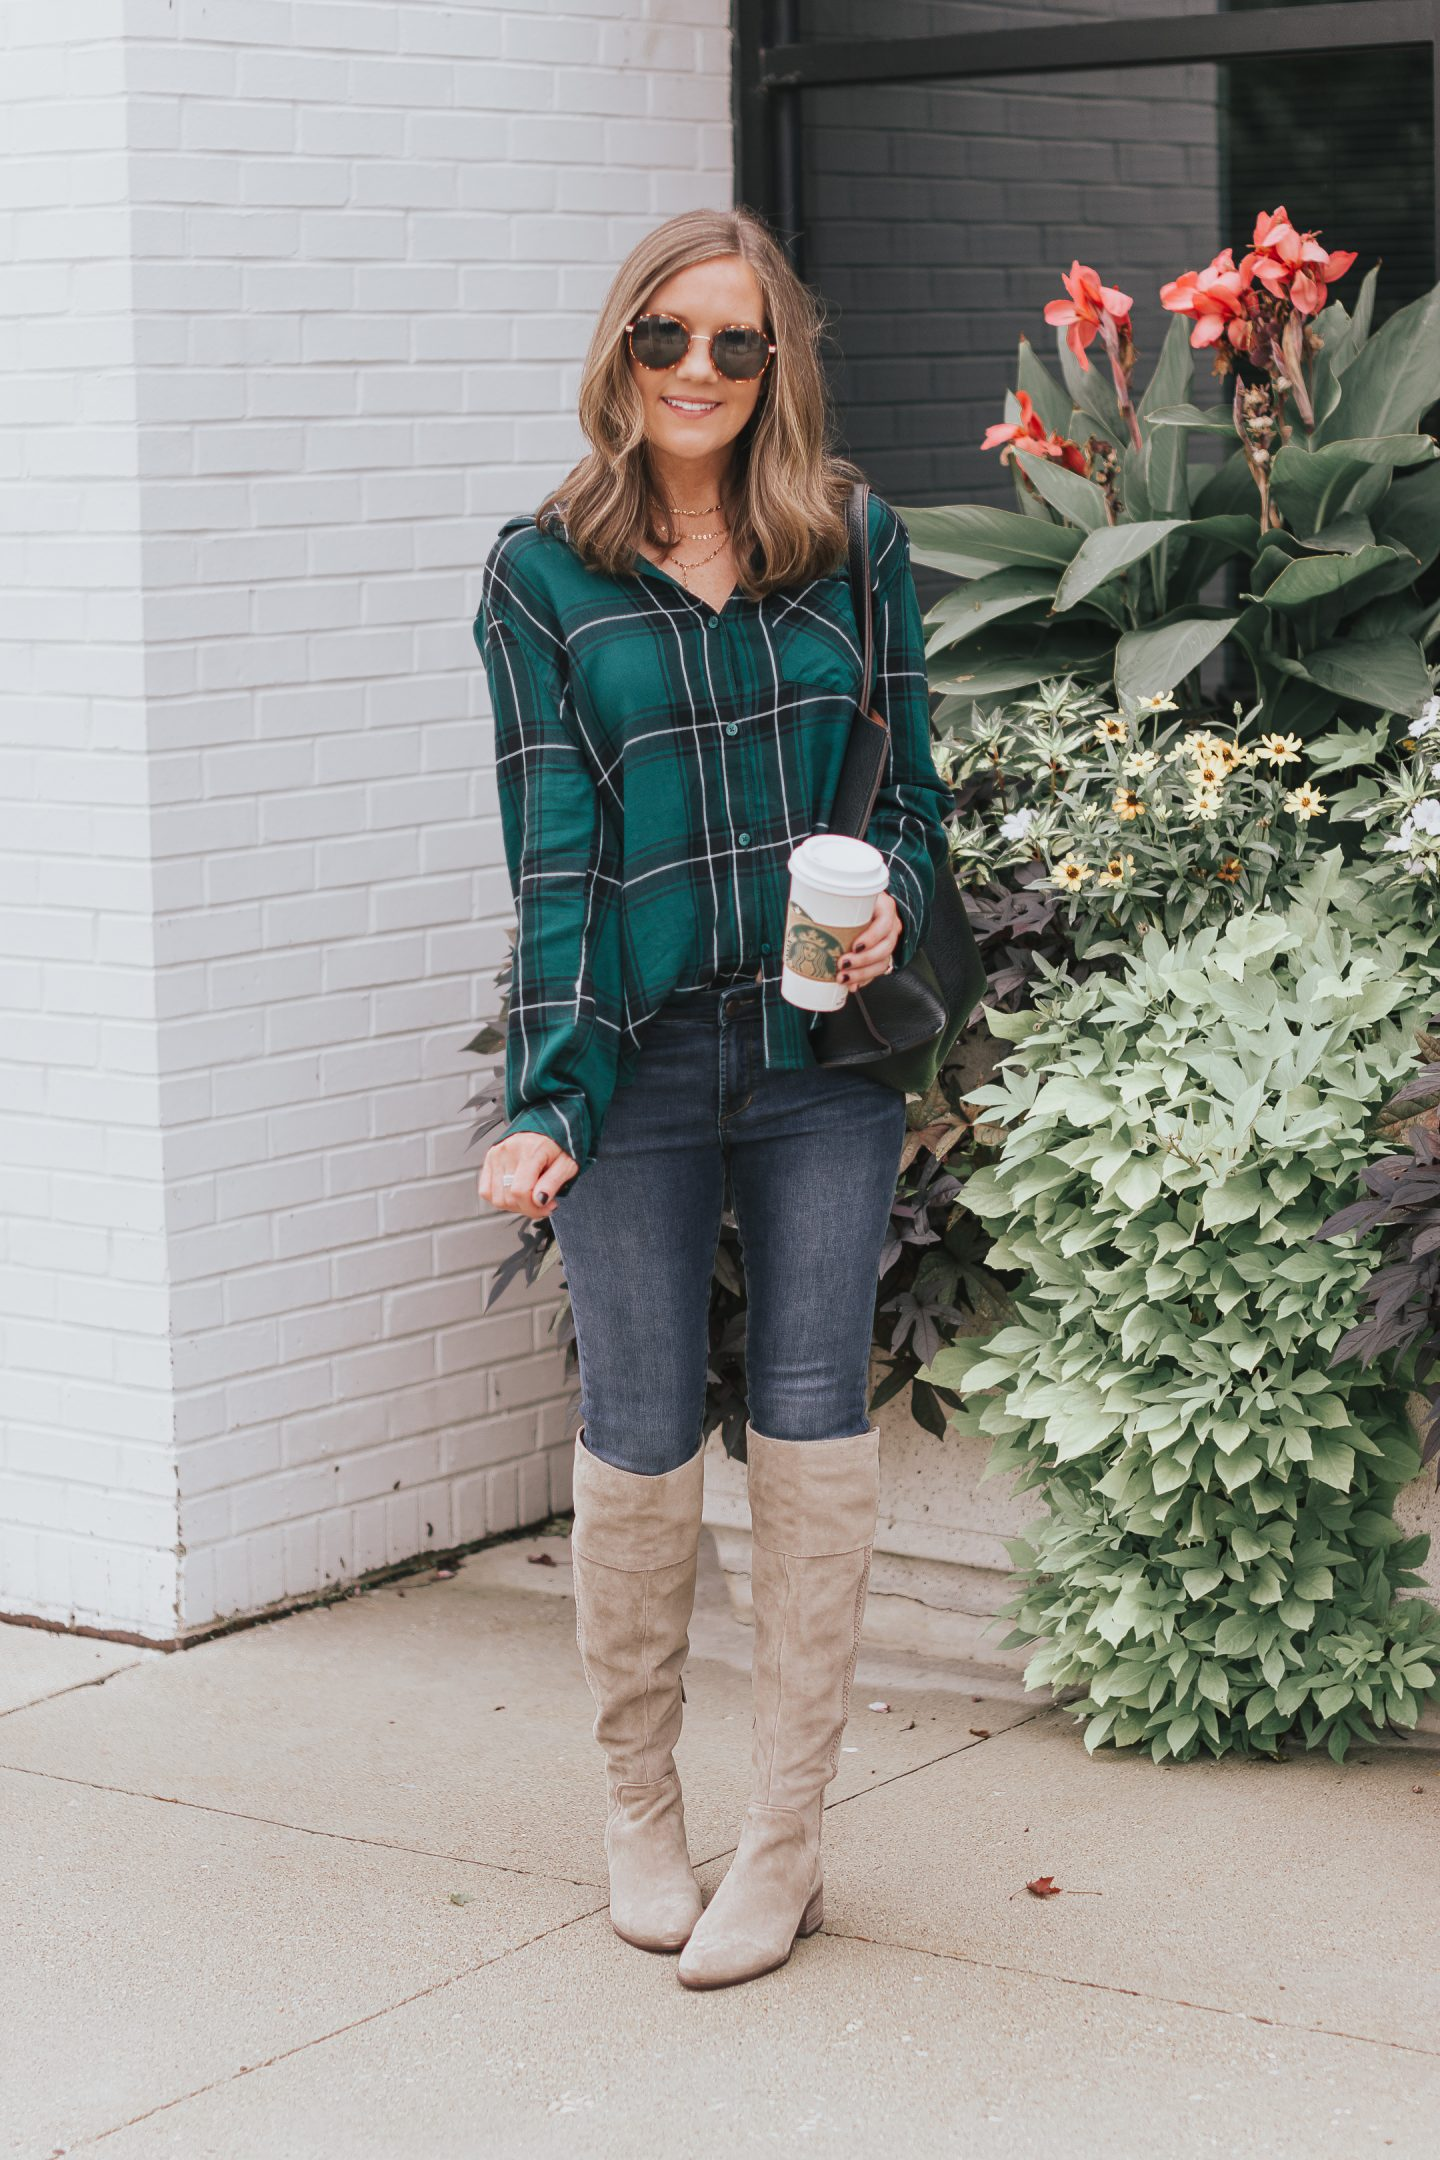 quintessential fall outfit, 10 fall must haves, 2018 fall fashion, plaid shirt, skinny jeans, over the knee boots